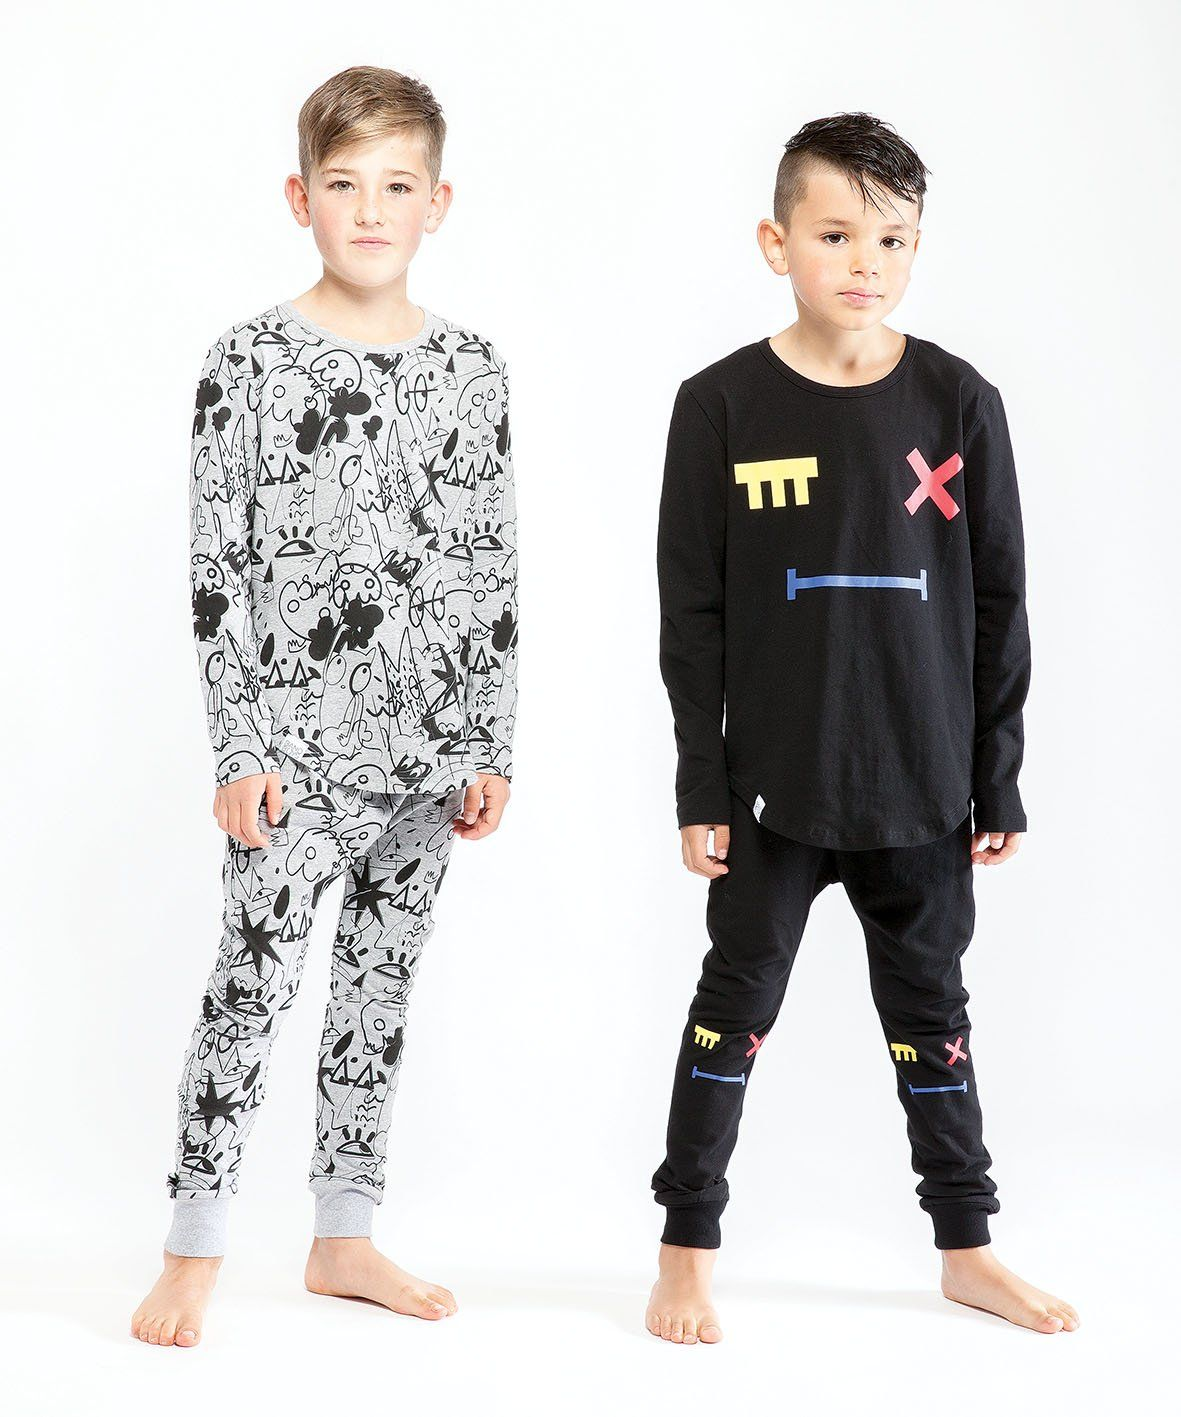 9eaefad2e1c9 Band of Boys Close Your Eyes Winter PJ s - Threads for Boys ...